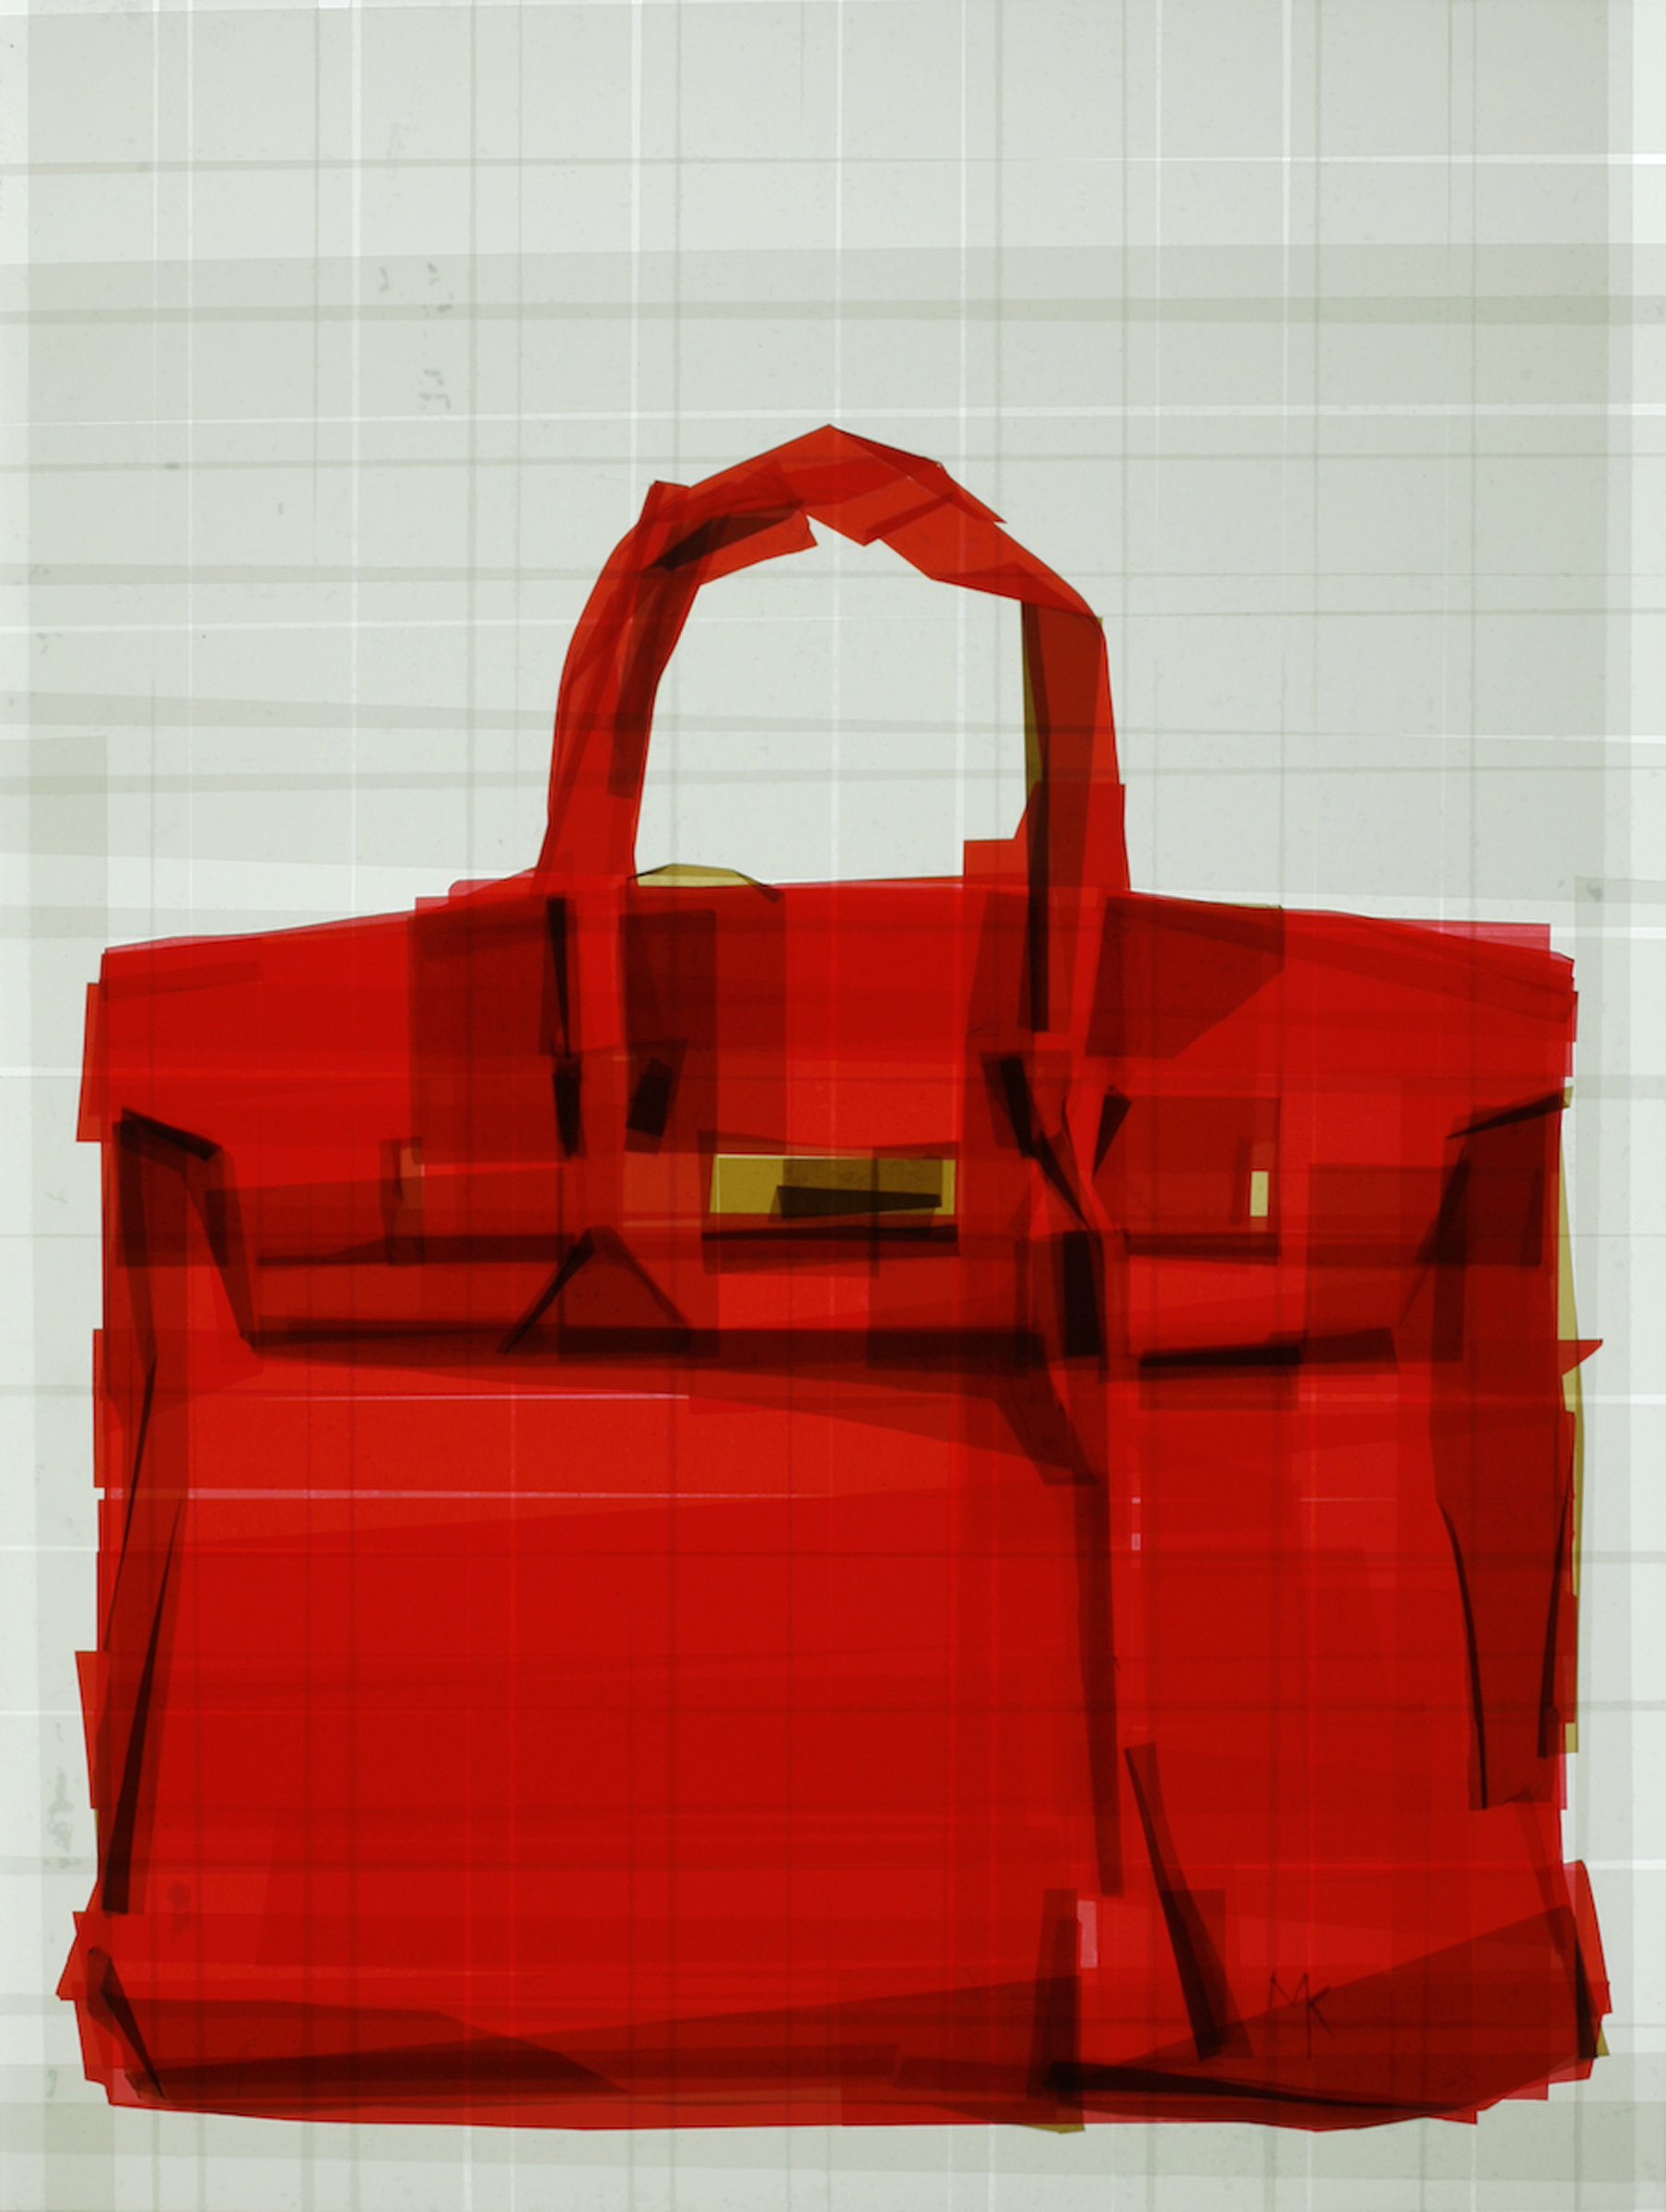 Birkin Bag Glimpse 2, 27 x 20.5 x 6 inches / 69 x 52 x 15.24 cm, packaging tape on acrylic panel with translucent resin light box, 2013